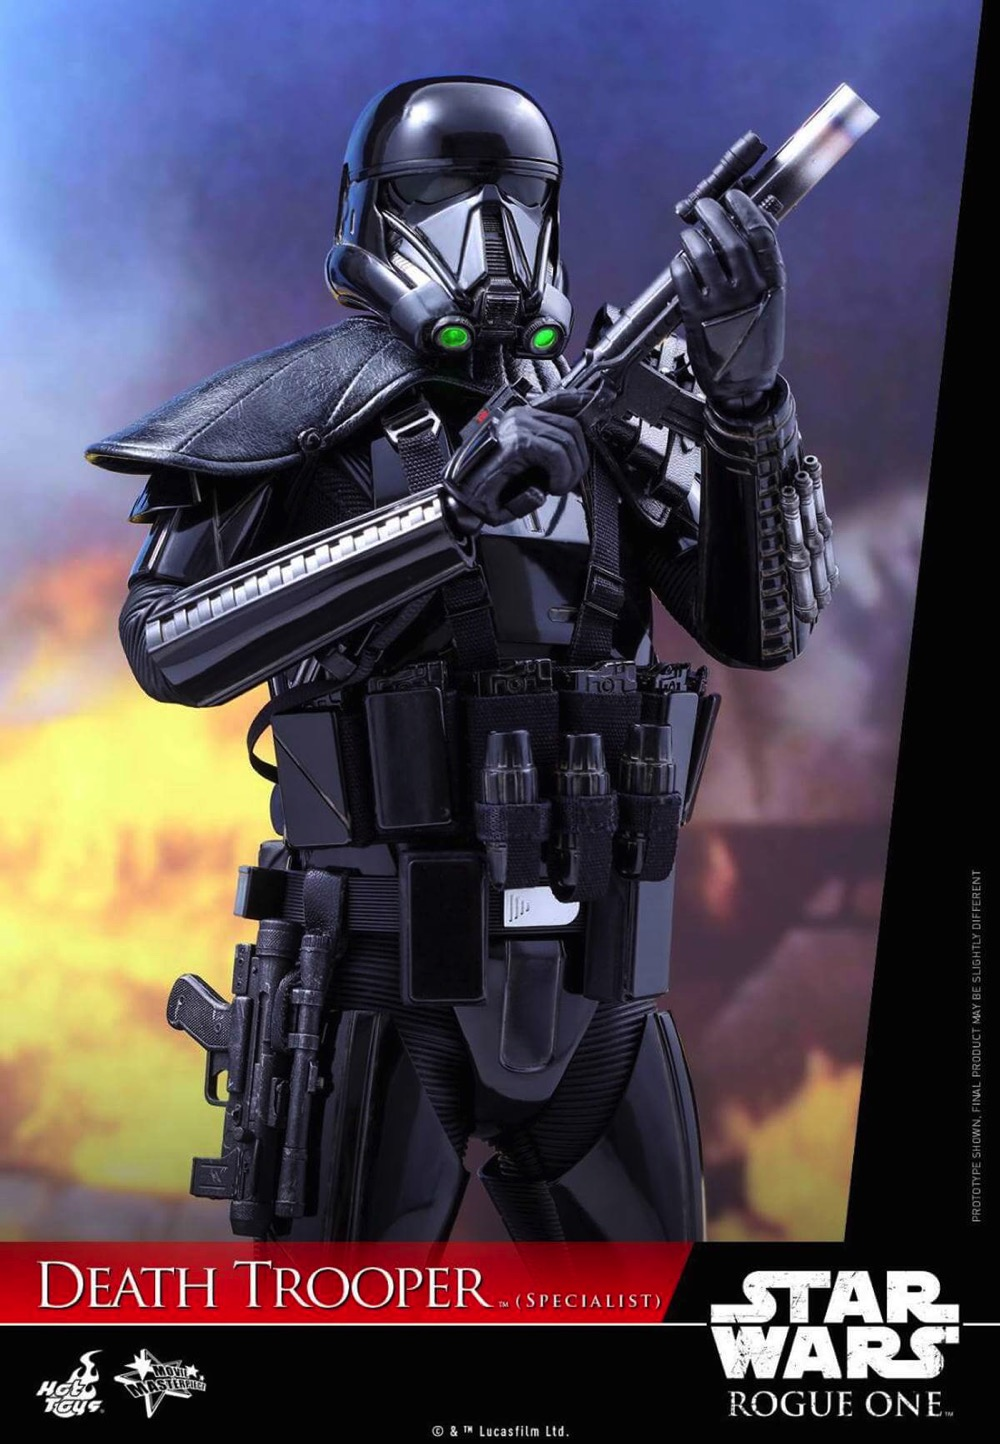 Rogue one deathtropper figure41